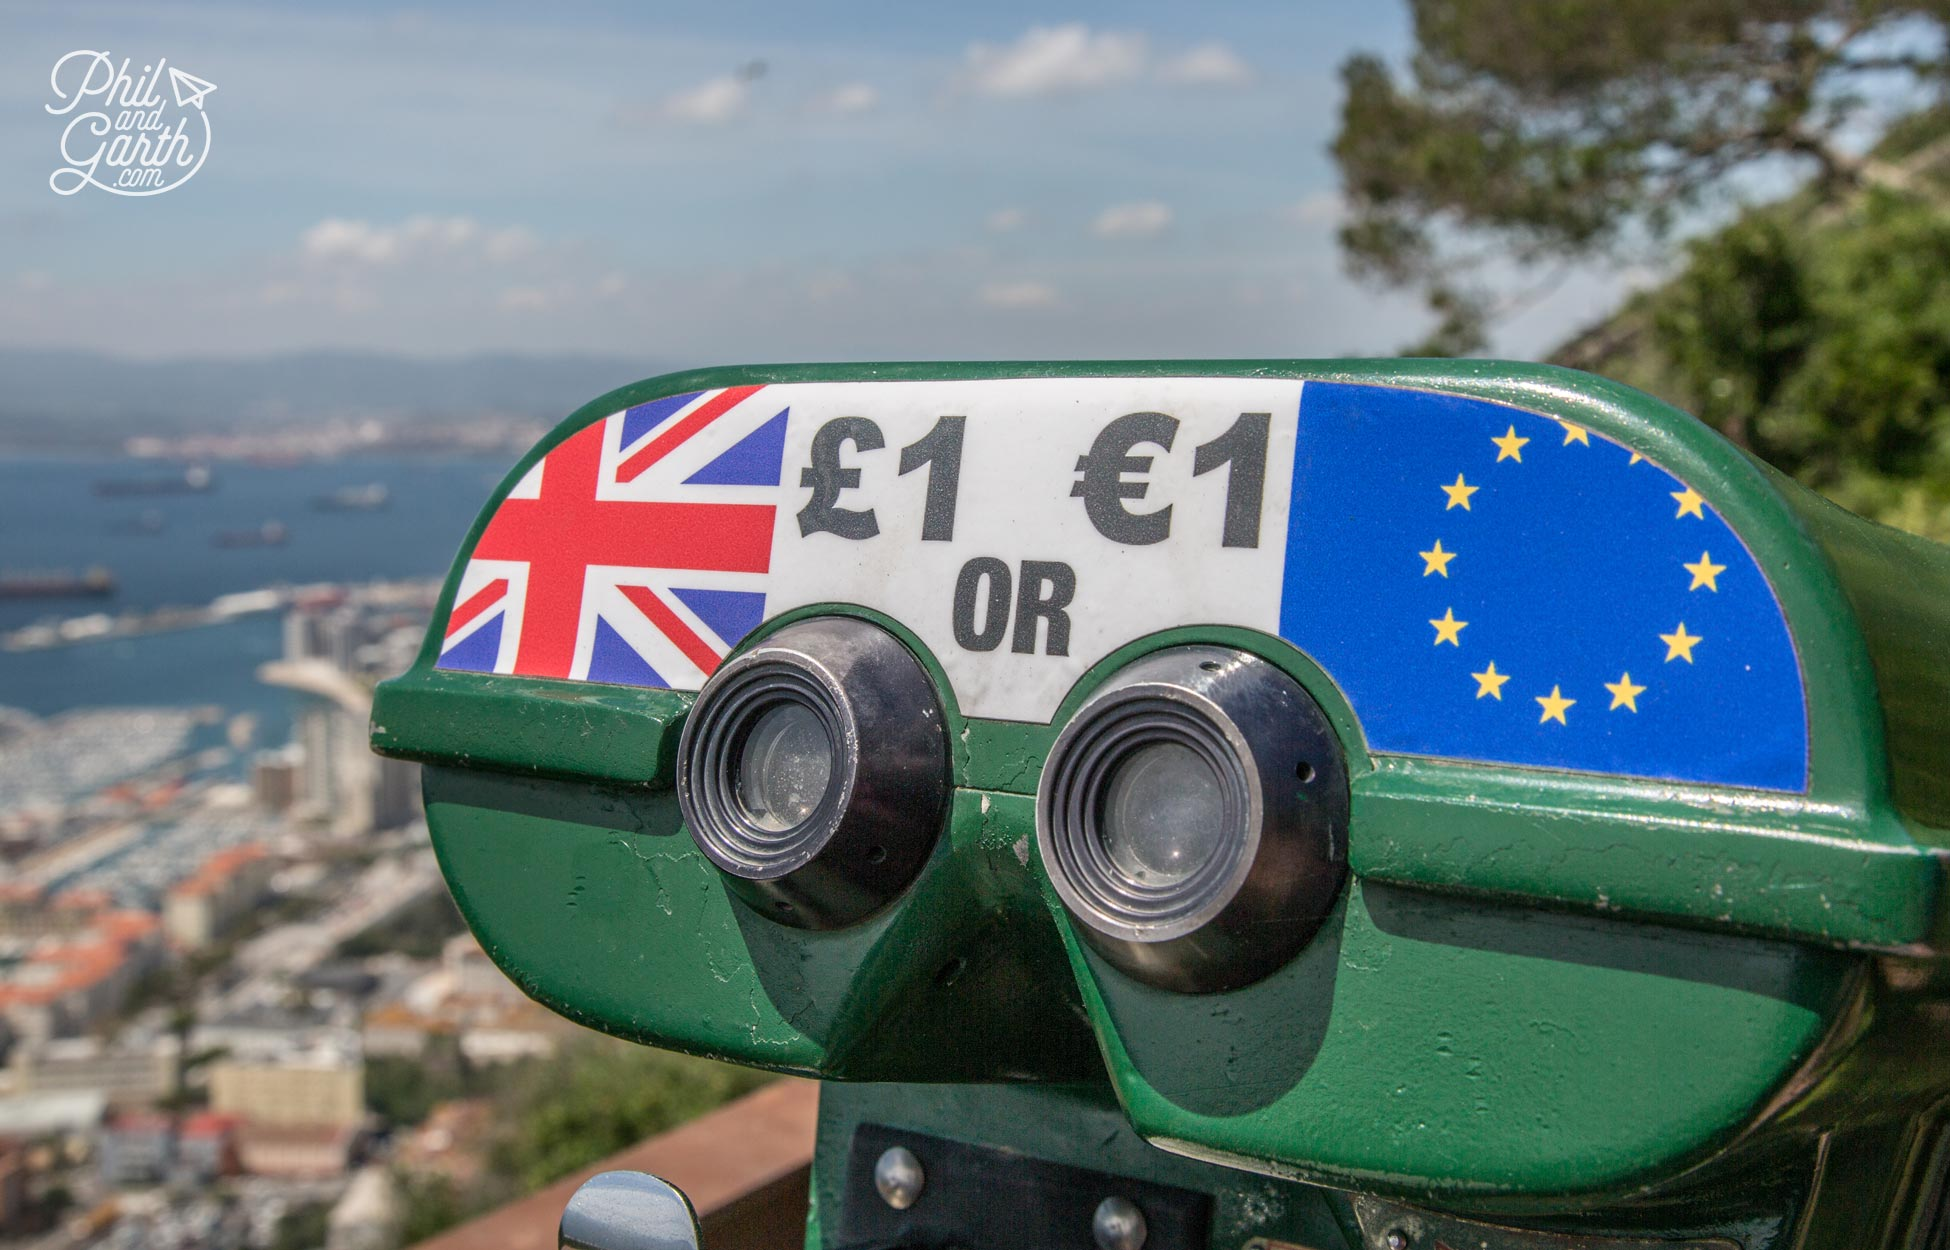 Gibraltar voted overwhelmingly to stay in EU (96%) in 2016's UK European Union membership referendum